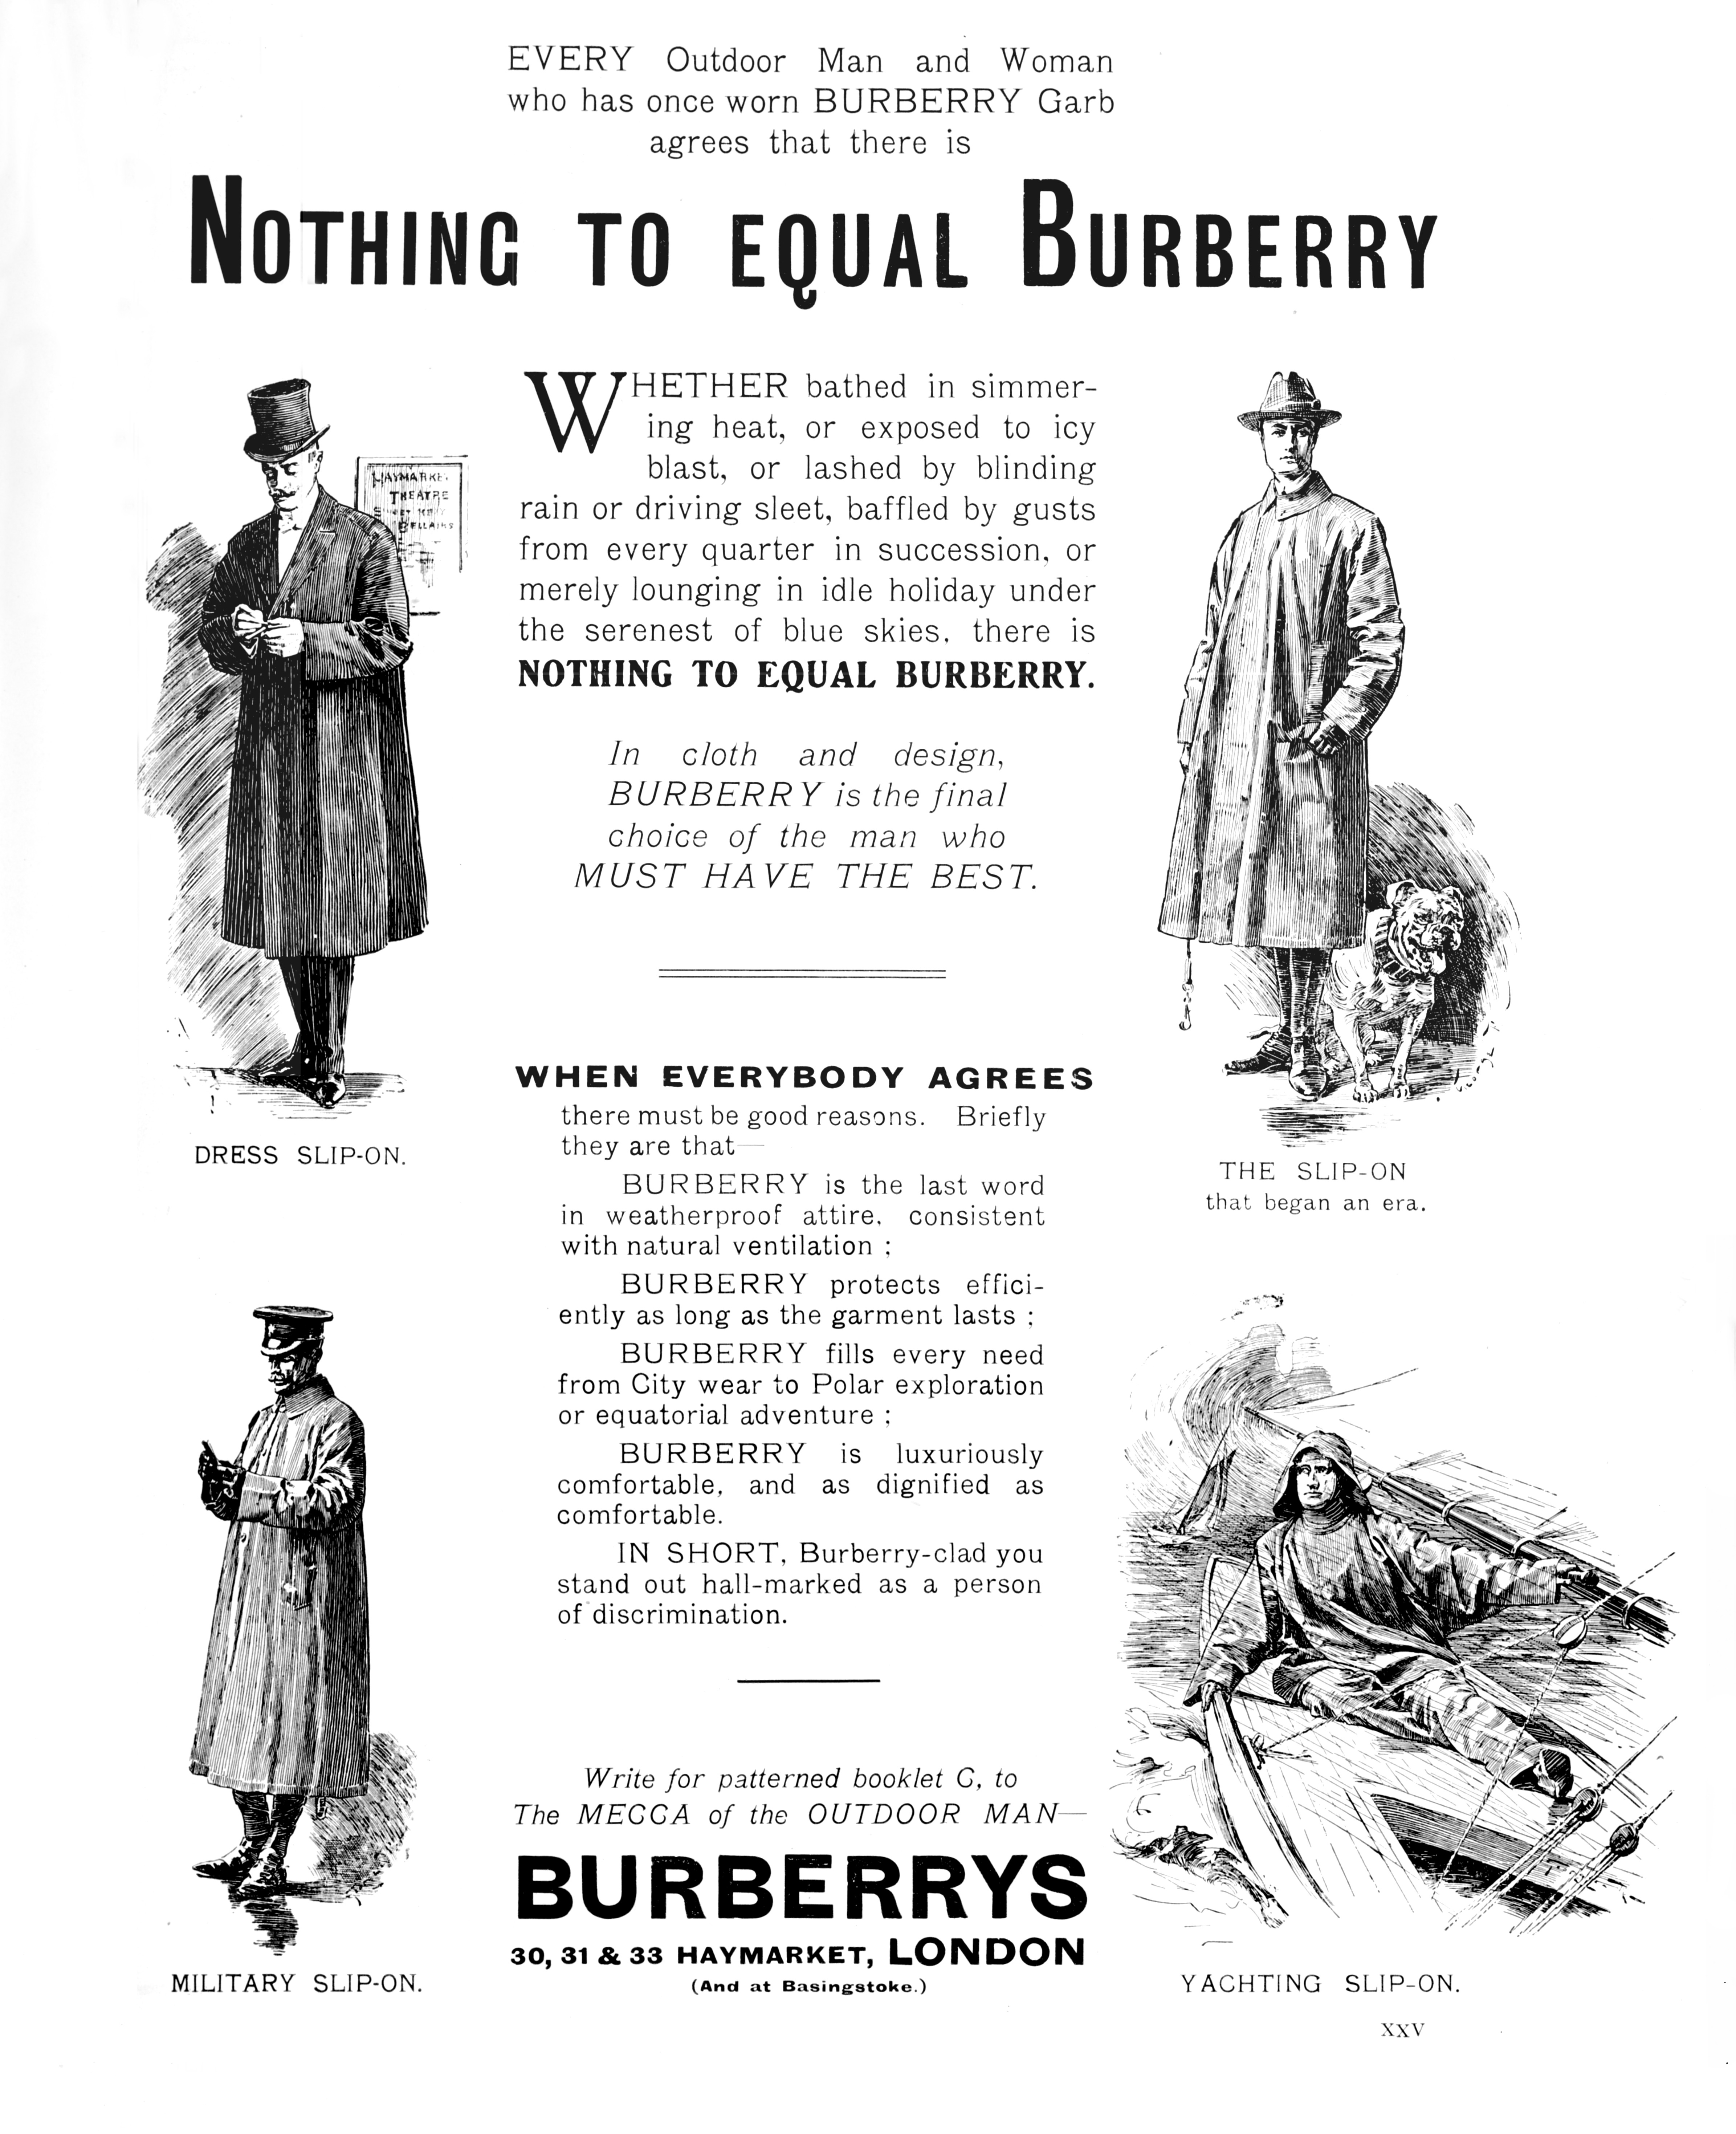 A 1909 ad for Burberry raincoats